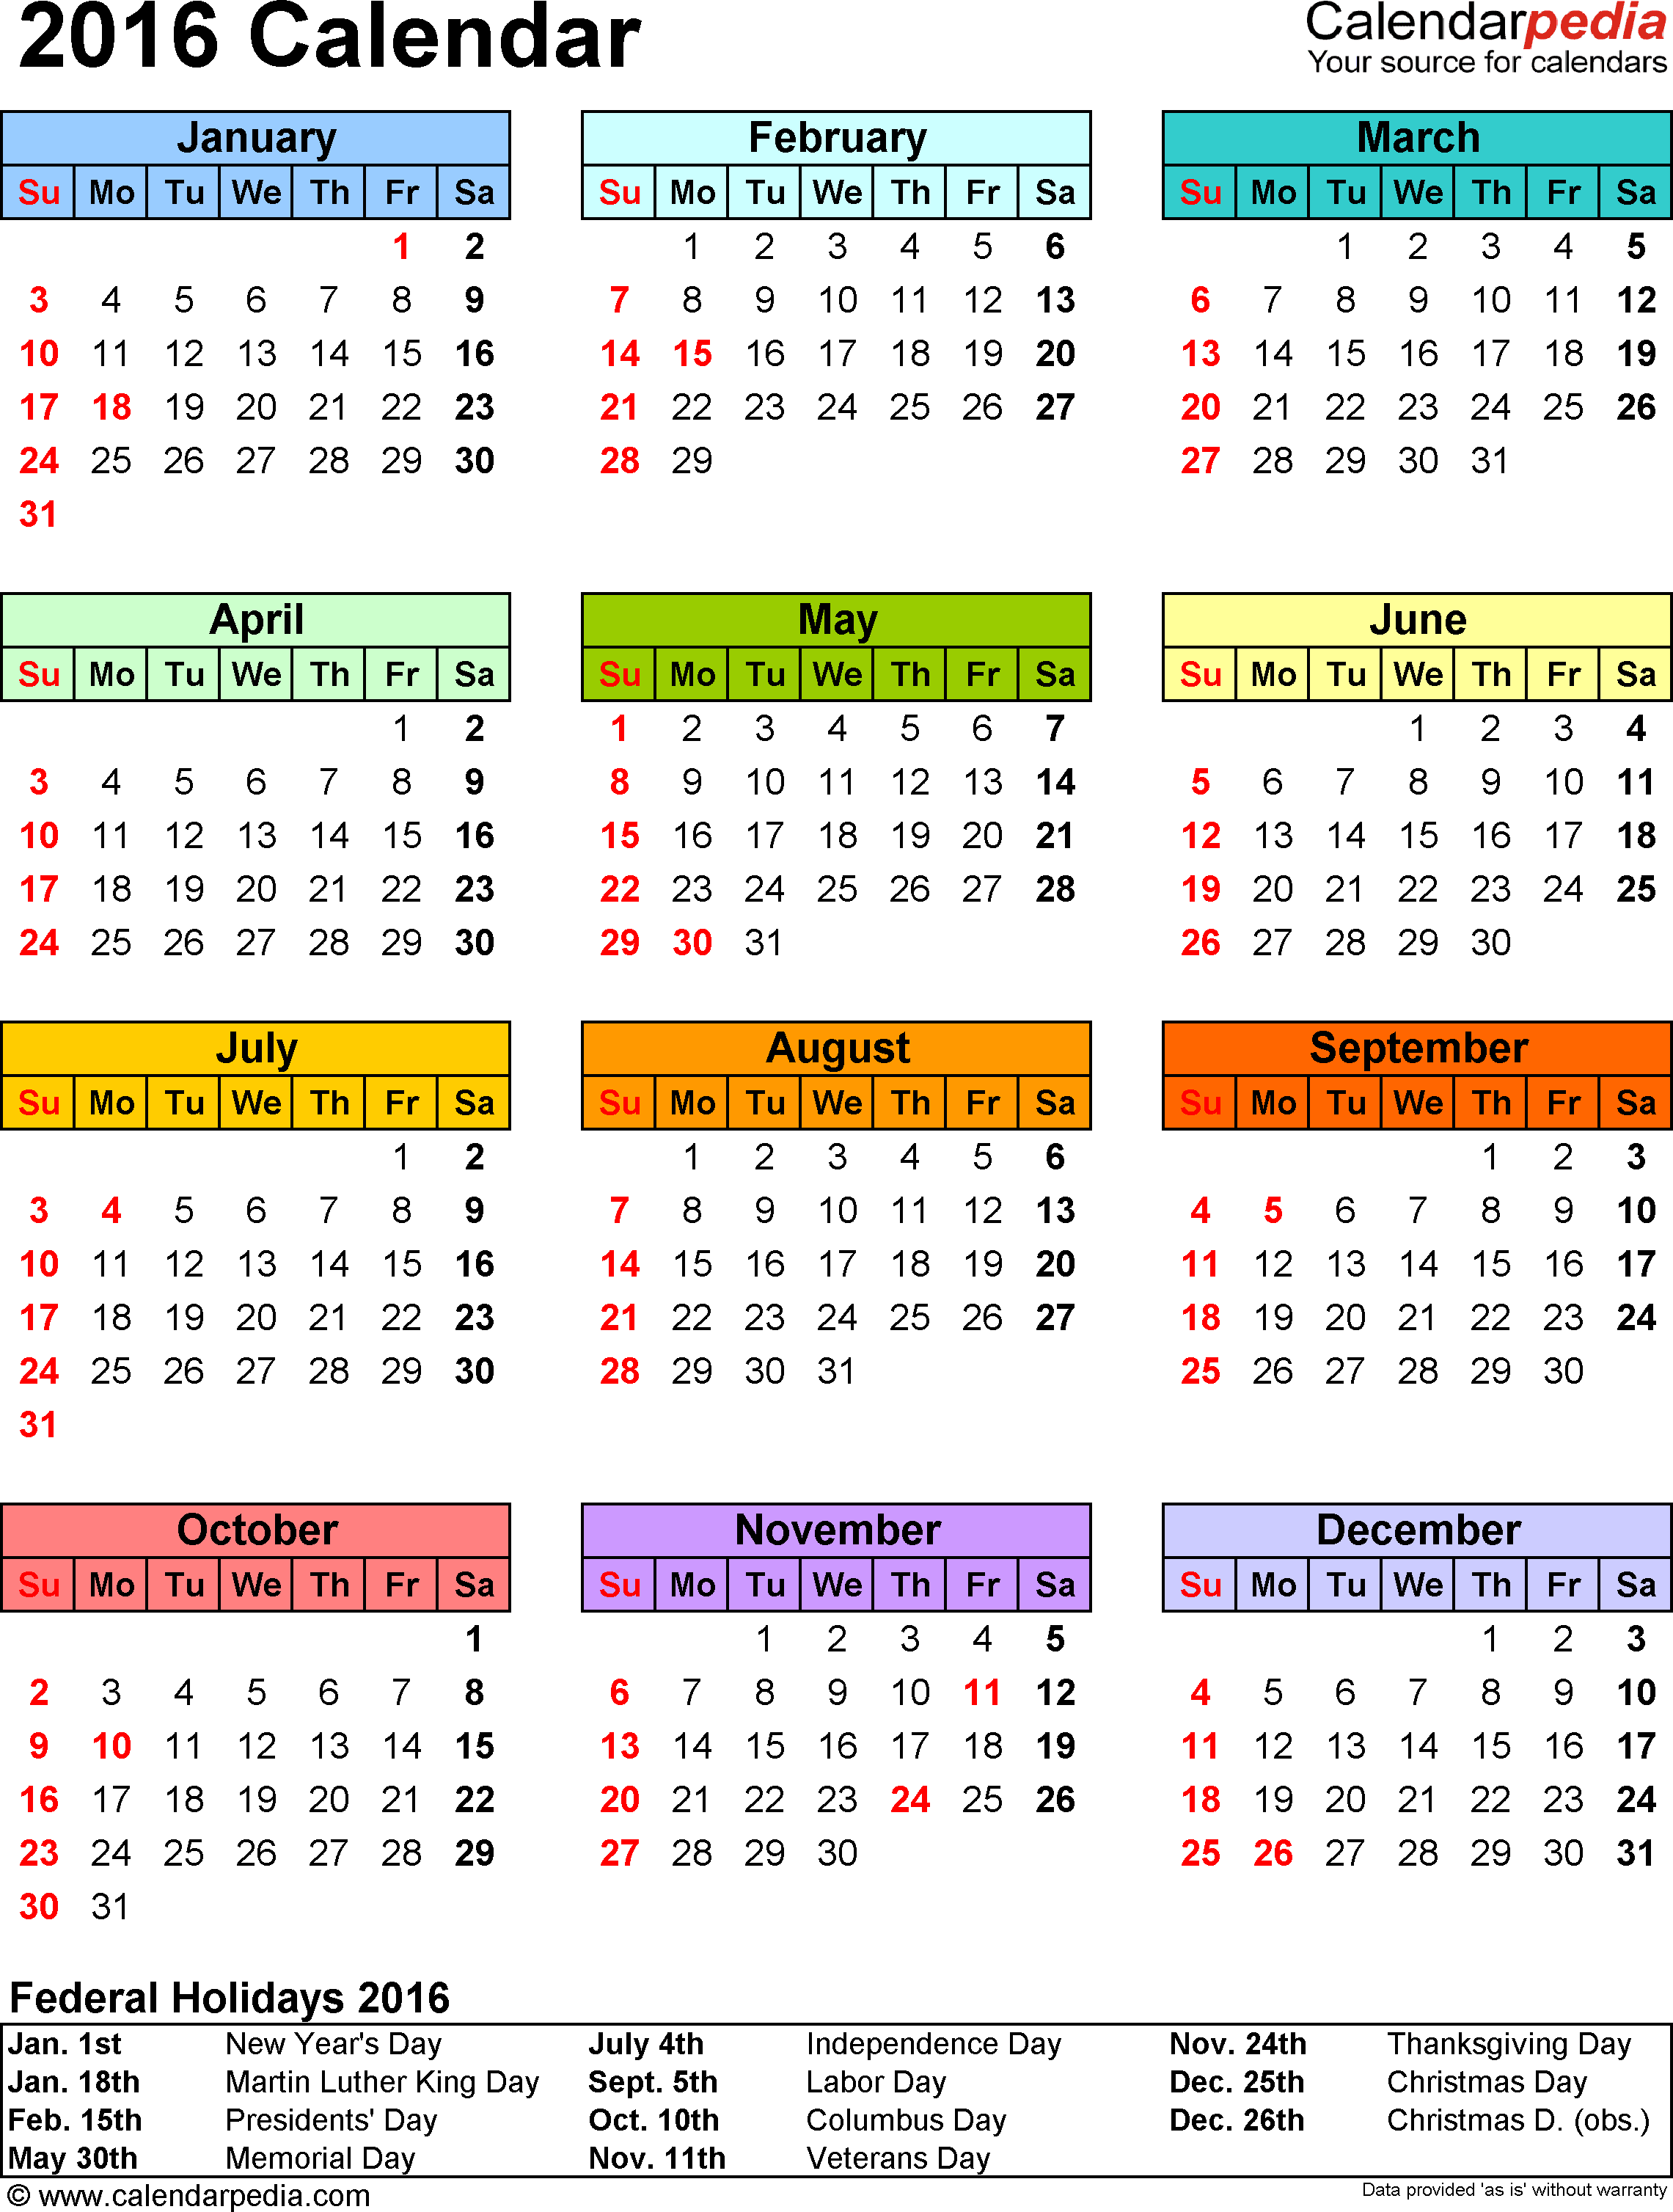 Template 14: 2016 Calendar for Excel, year at a glance, 1 page, in color, portrait orientation